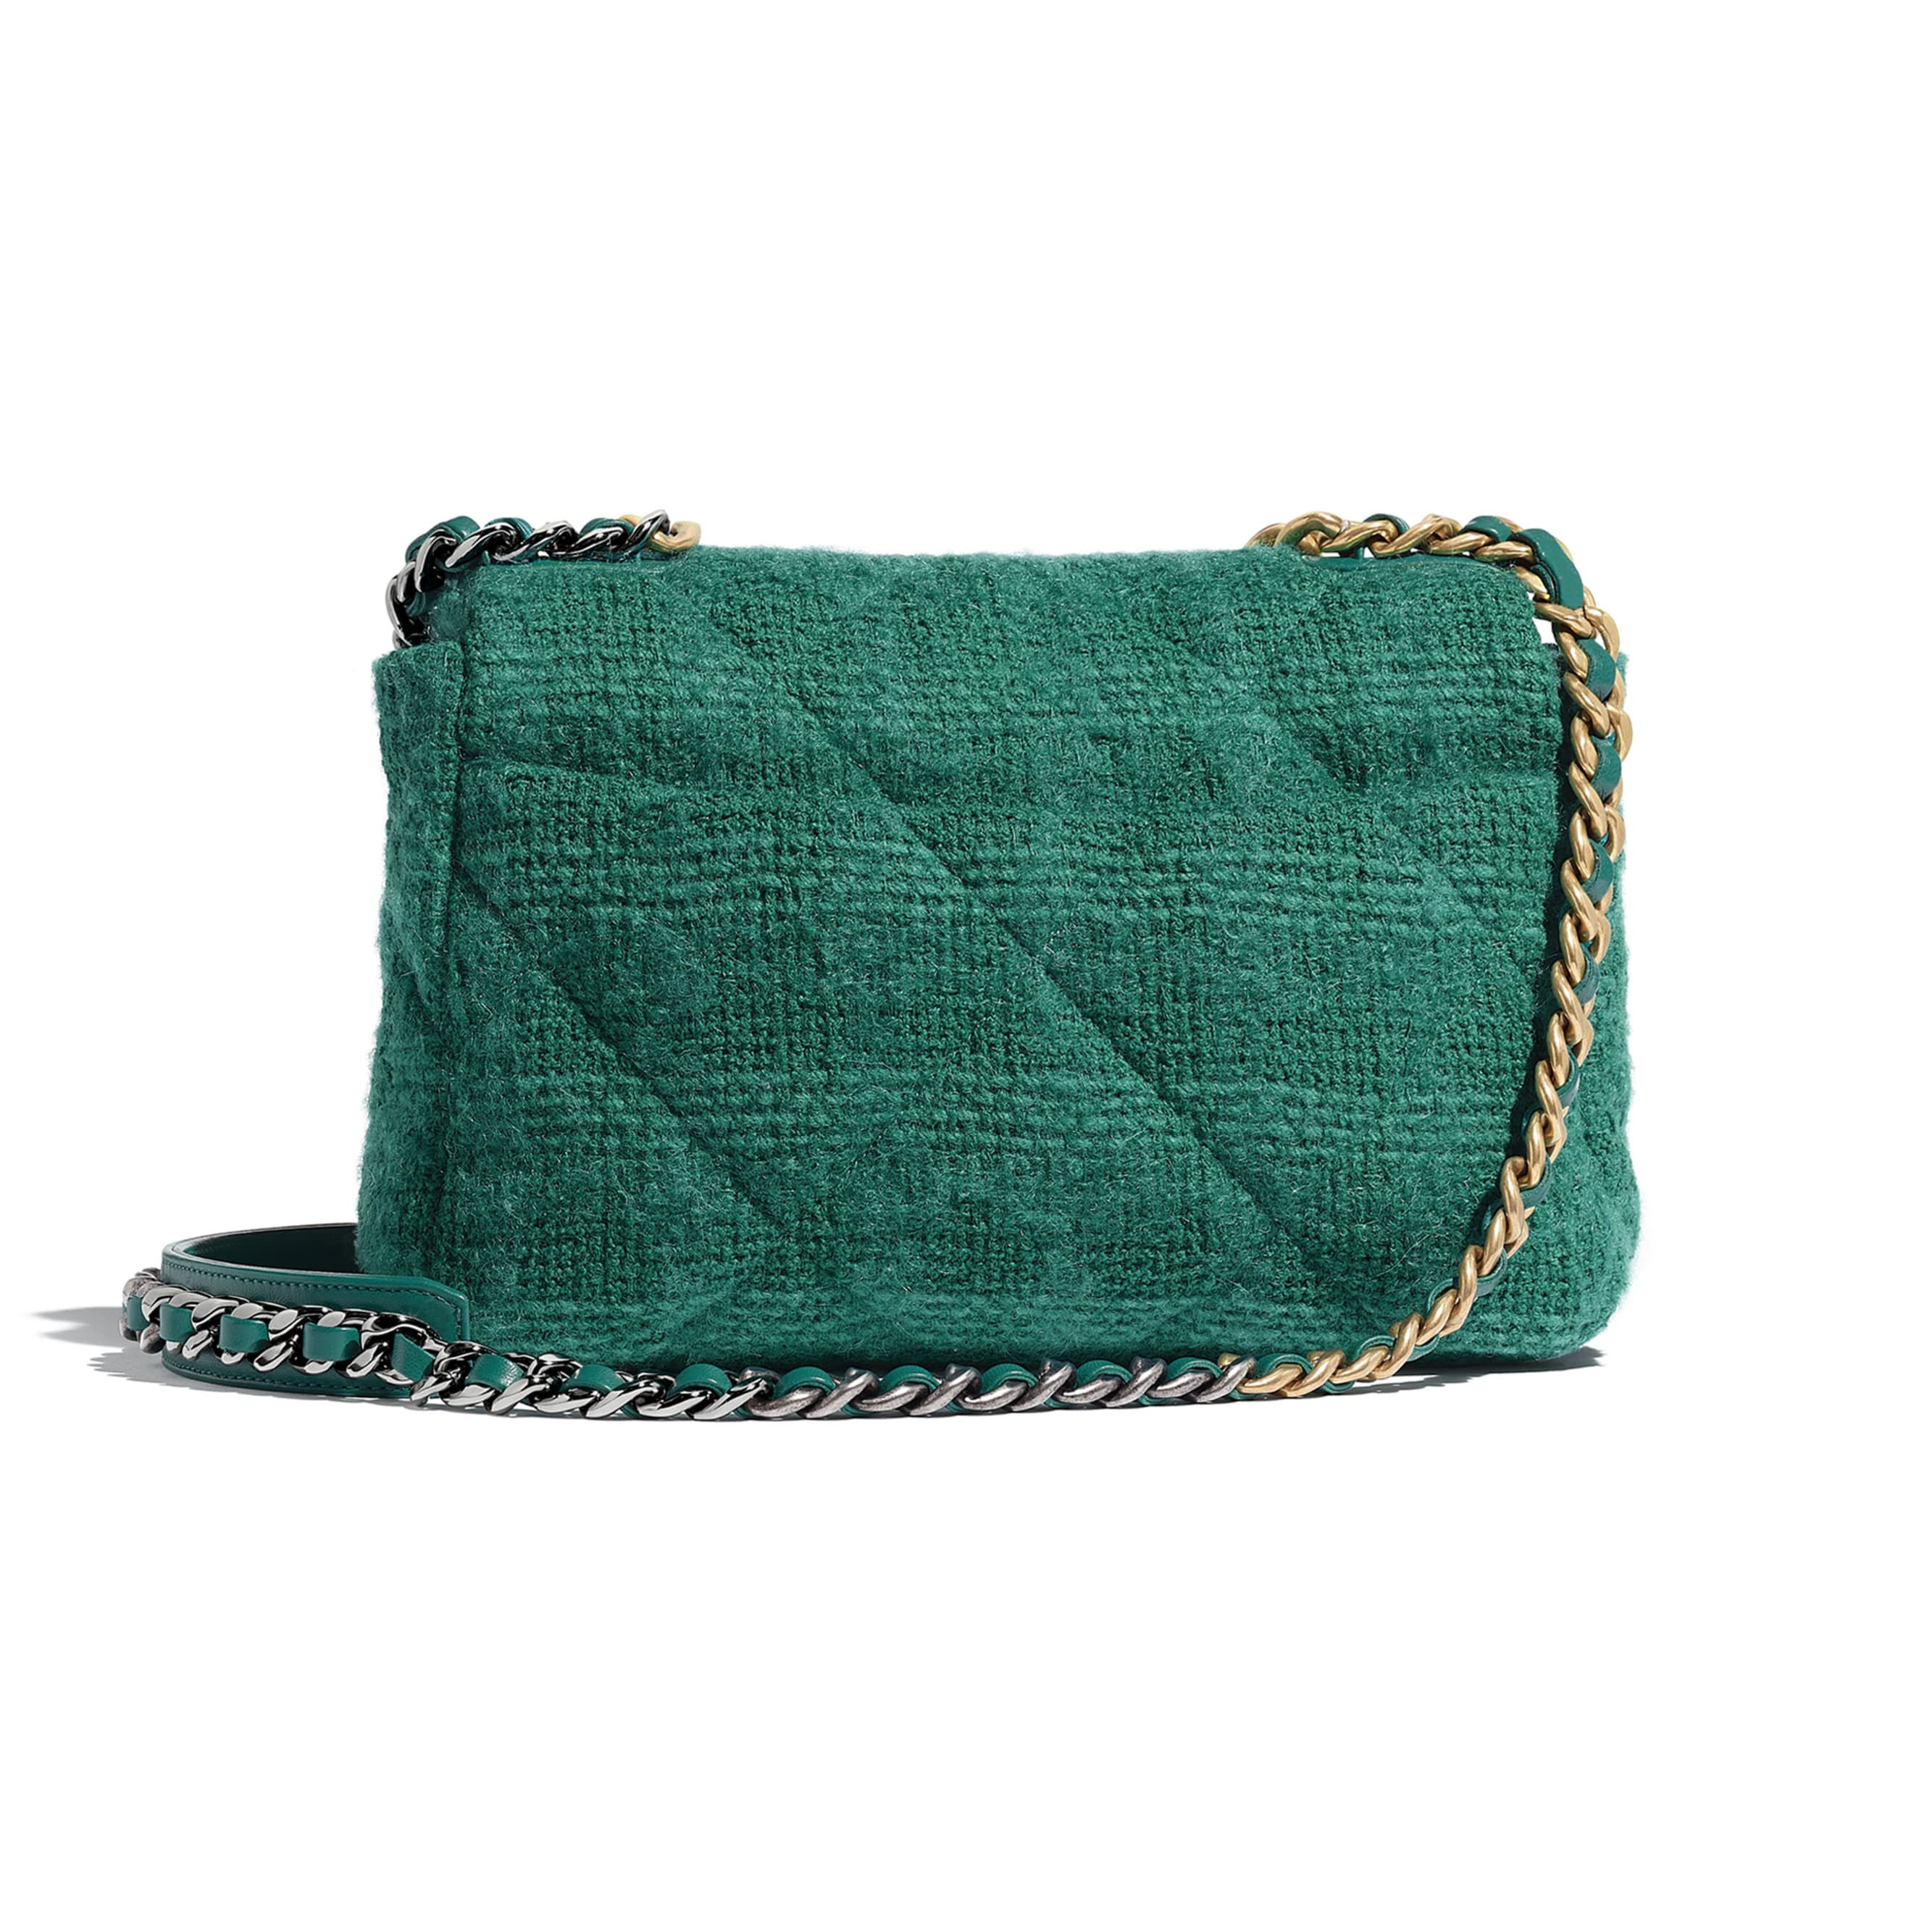 CHANEL 19 Flap Bag - Green - Wool Tweed, Gold-Tone, Silver-Tone & Ruthenium-Finish Metal - Alternative view - see standard sized version